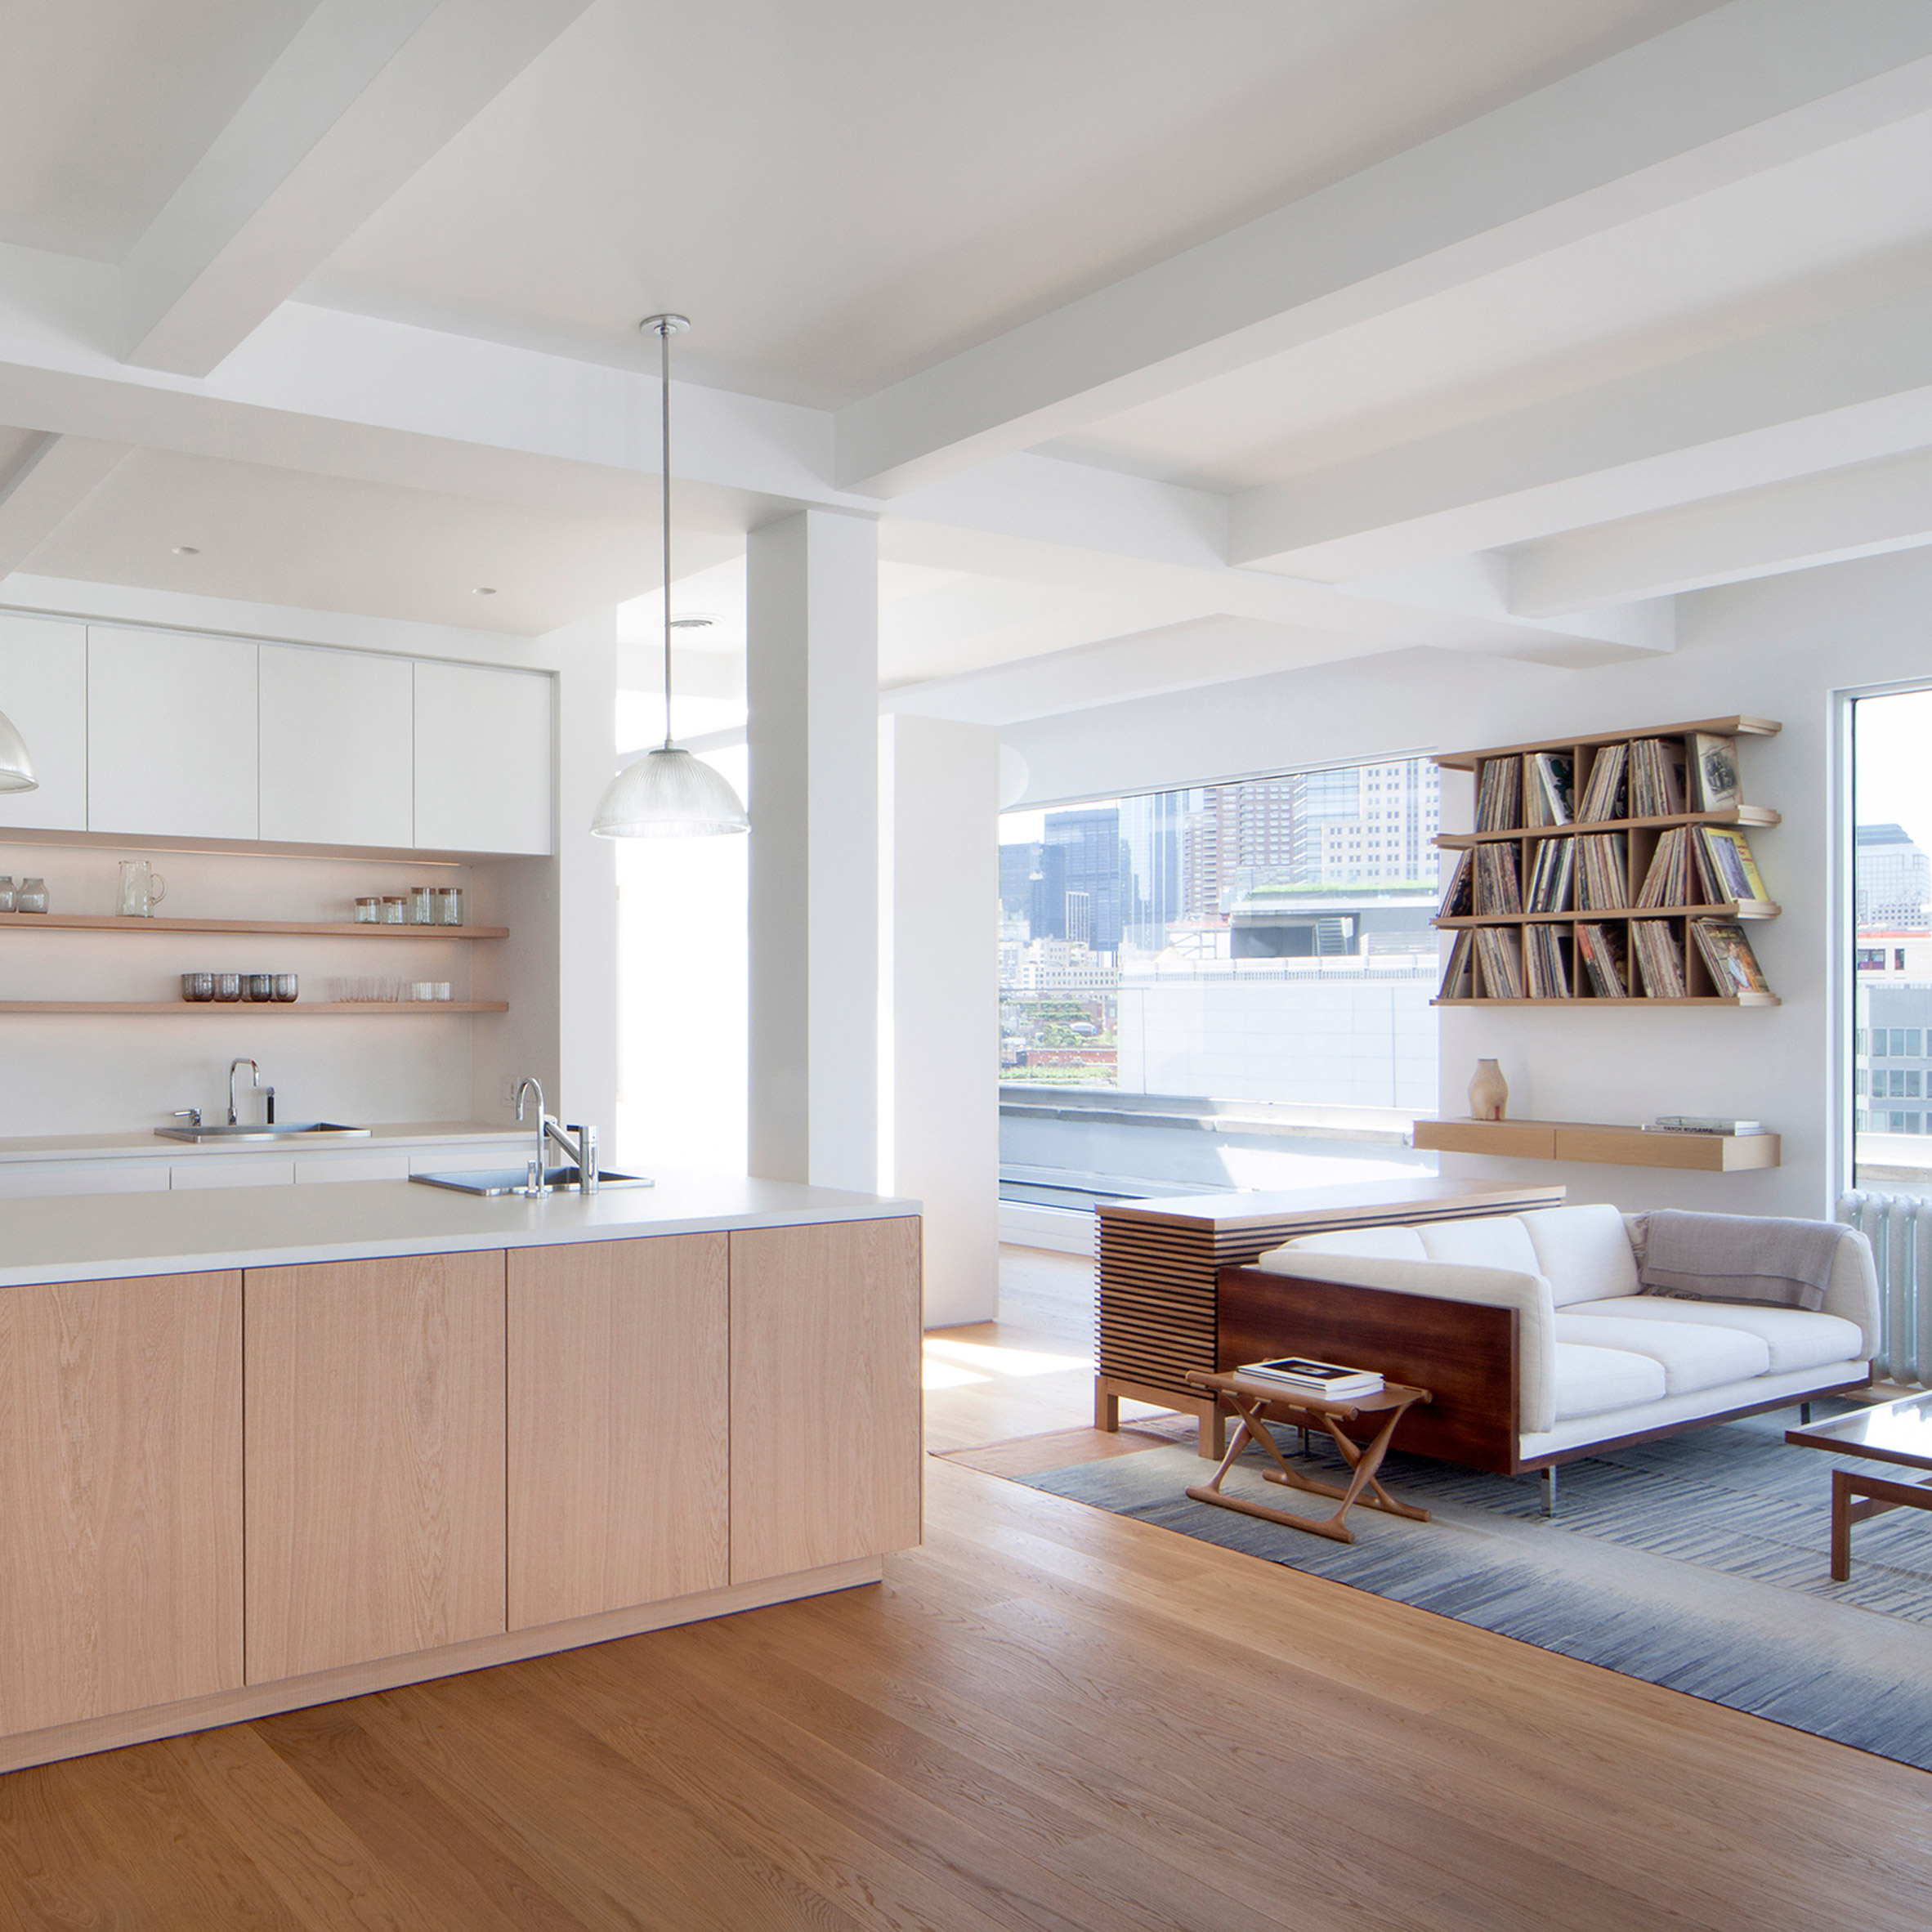 Tribeca penthouse by Space4Architecture features pale material palette